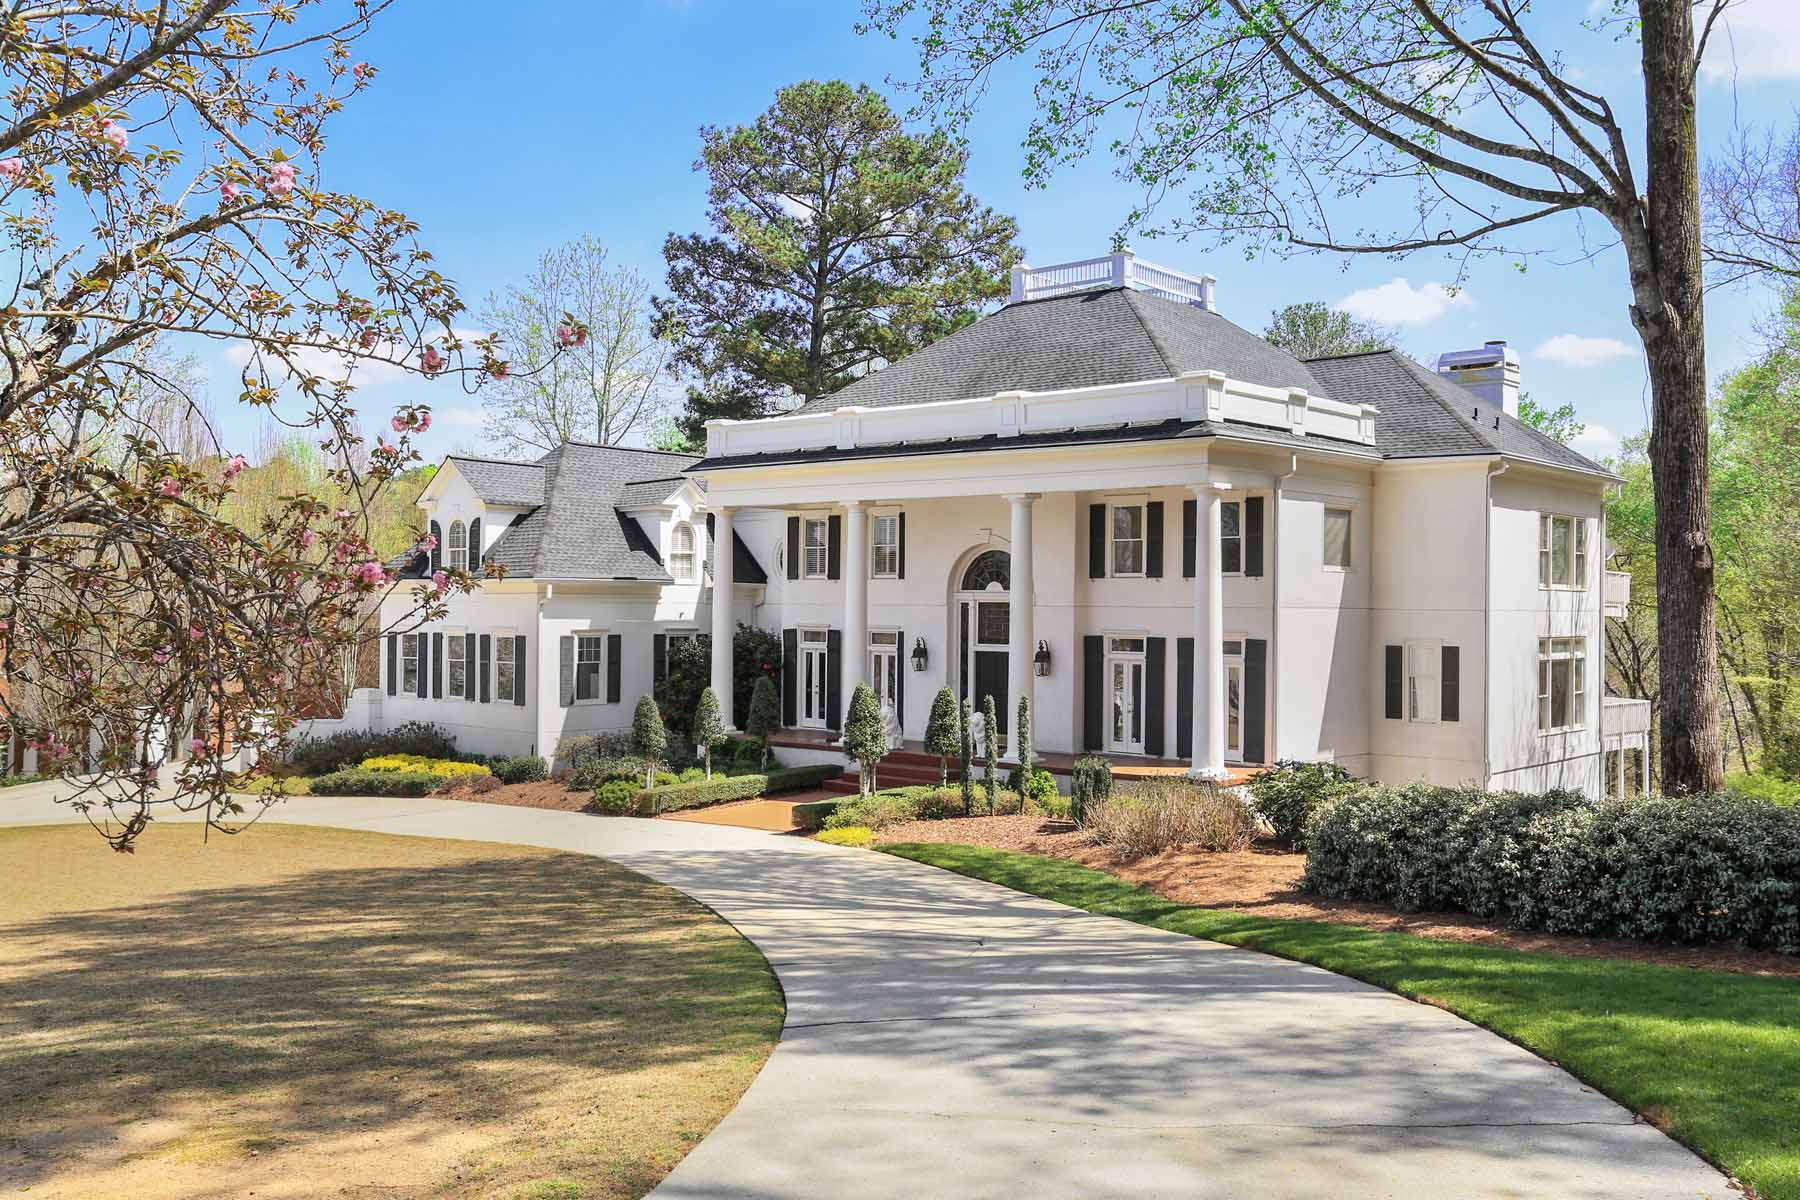 Single Family Home for Active at Comfortable Elegant Estate 3711 River Mansion Drive Peachtree Corners, Georgia 30096 United States